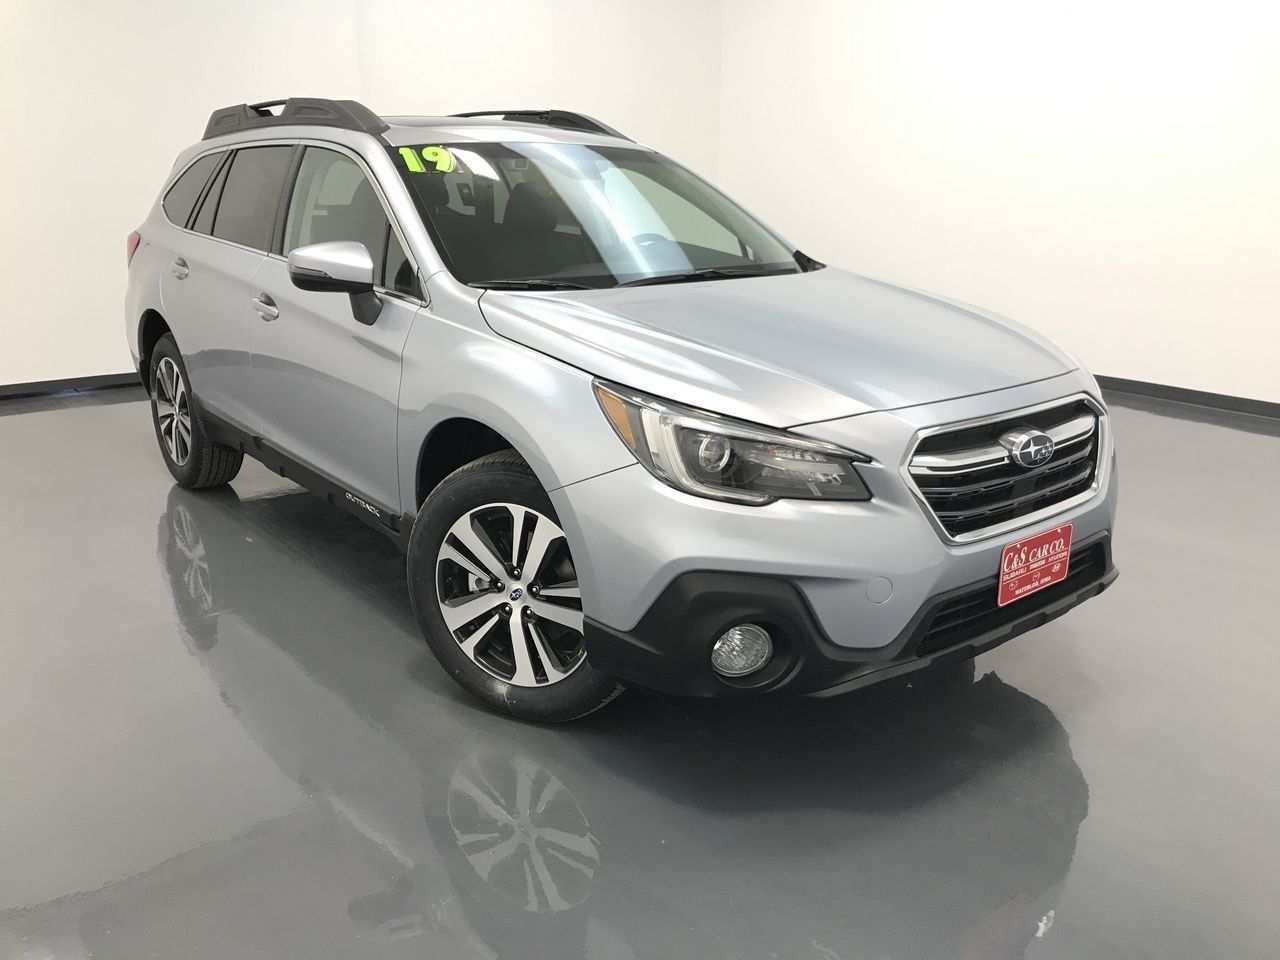 62 The Subaru 2019 Exterior Colors Review Model for Subaru 2019 Exterior Colors Review